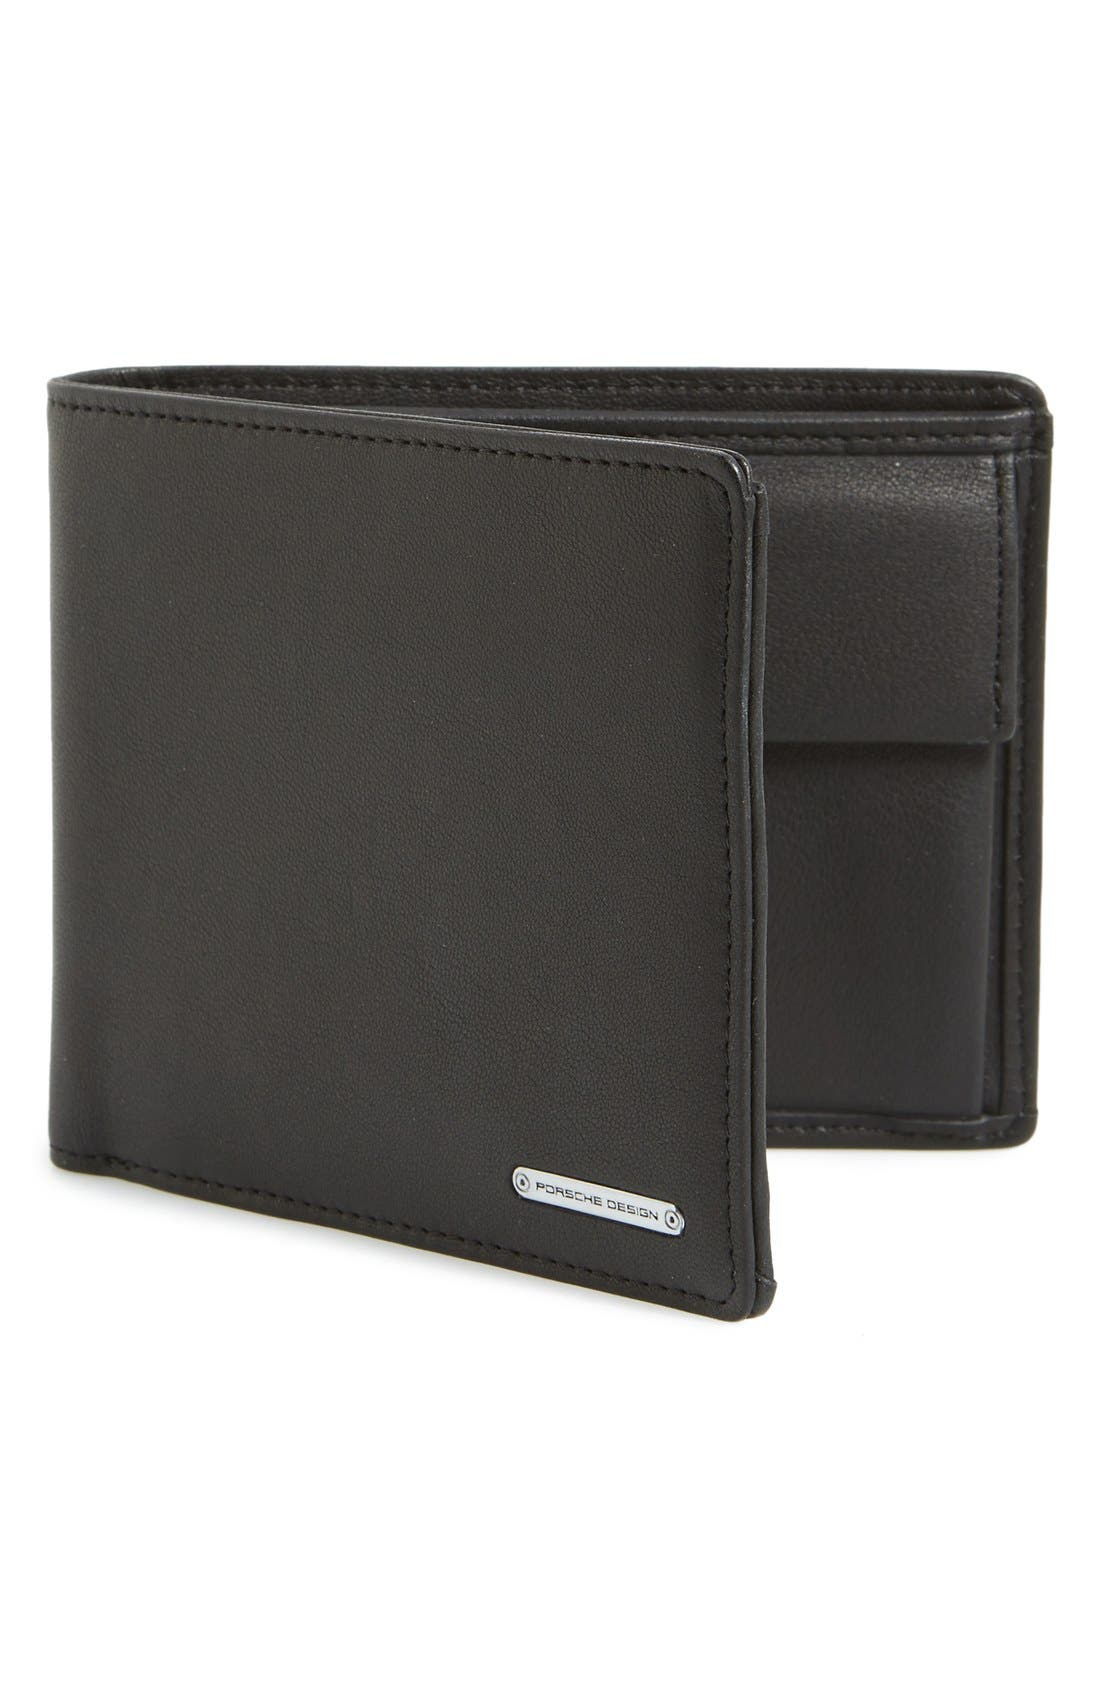 PORSCHE DESIGN CL2 2.0 Leather Billfold Wallet